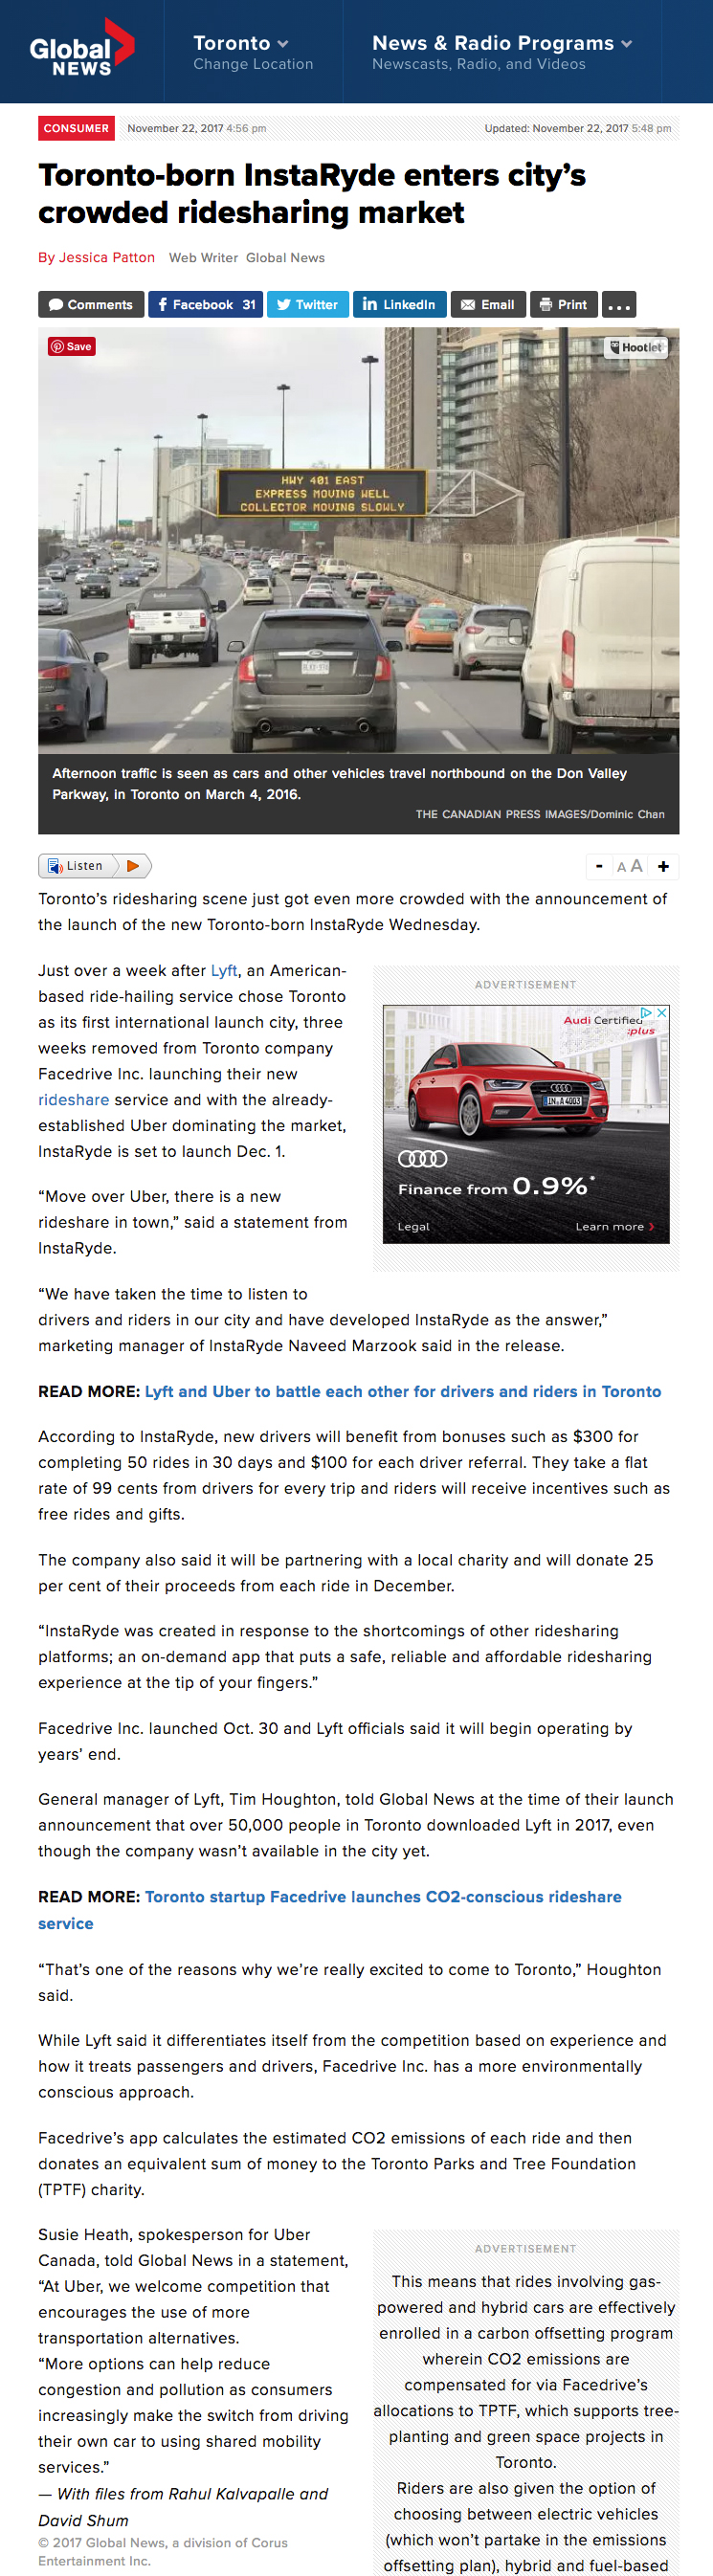 InstaRyde featured on Global News. www.globalnews.ca